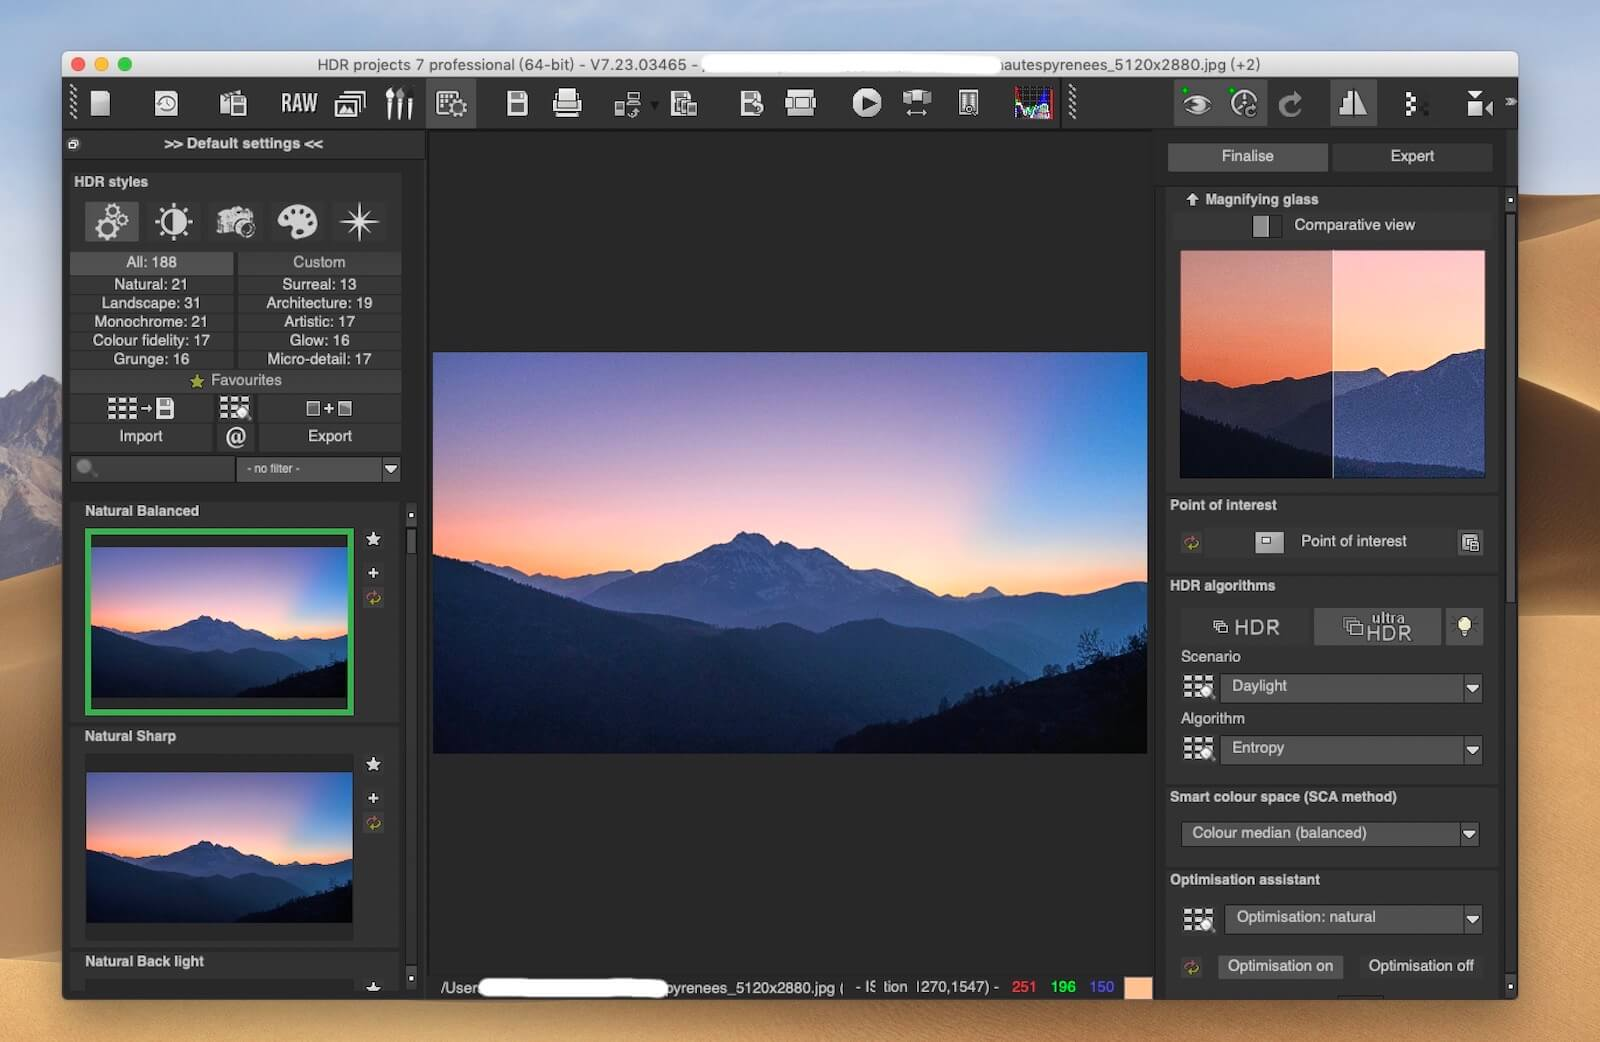 >HDR projects professional 7.23 – 摄影师HDR照片处理工具